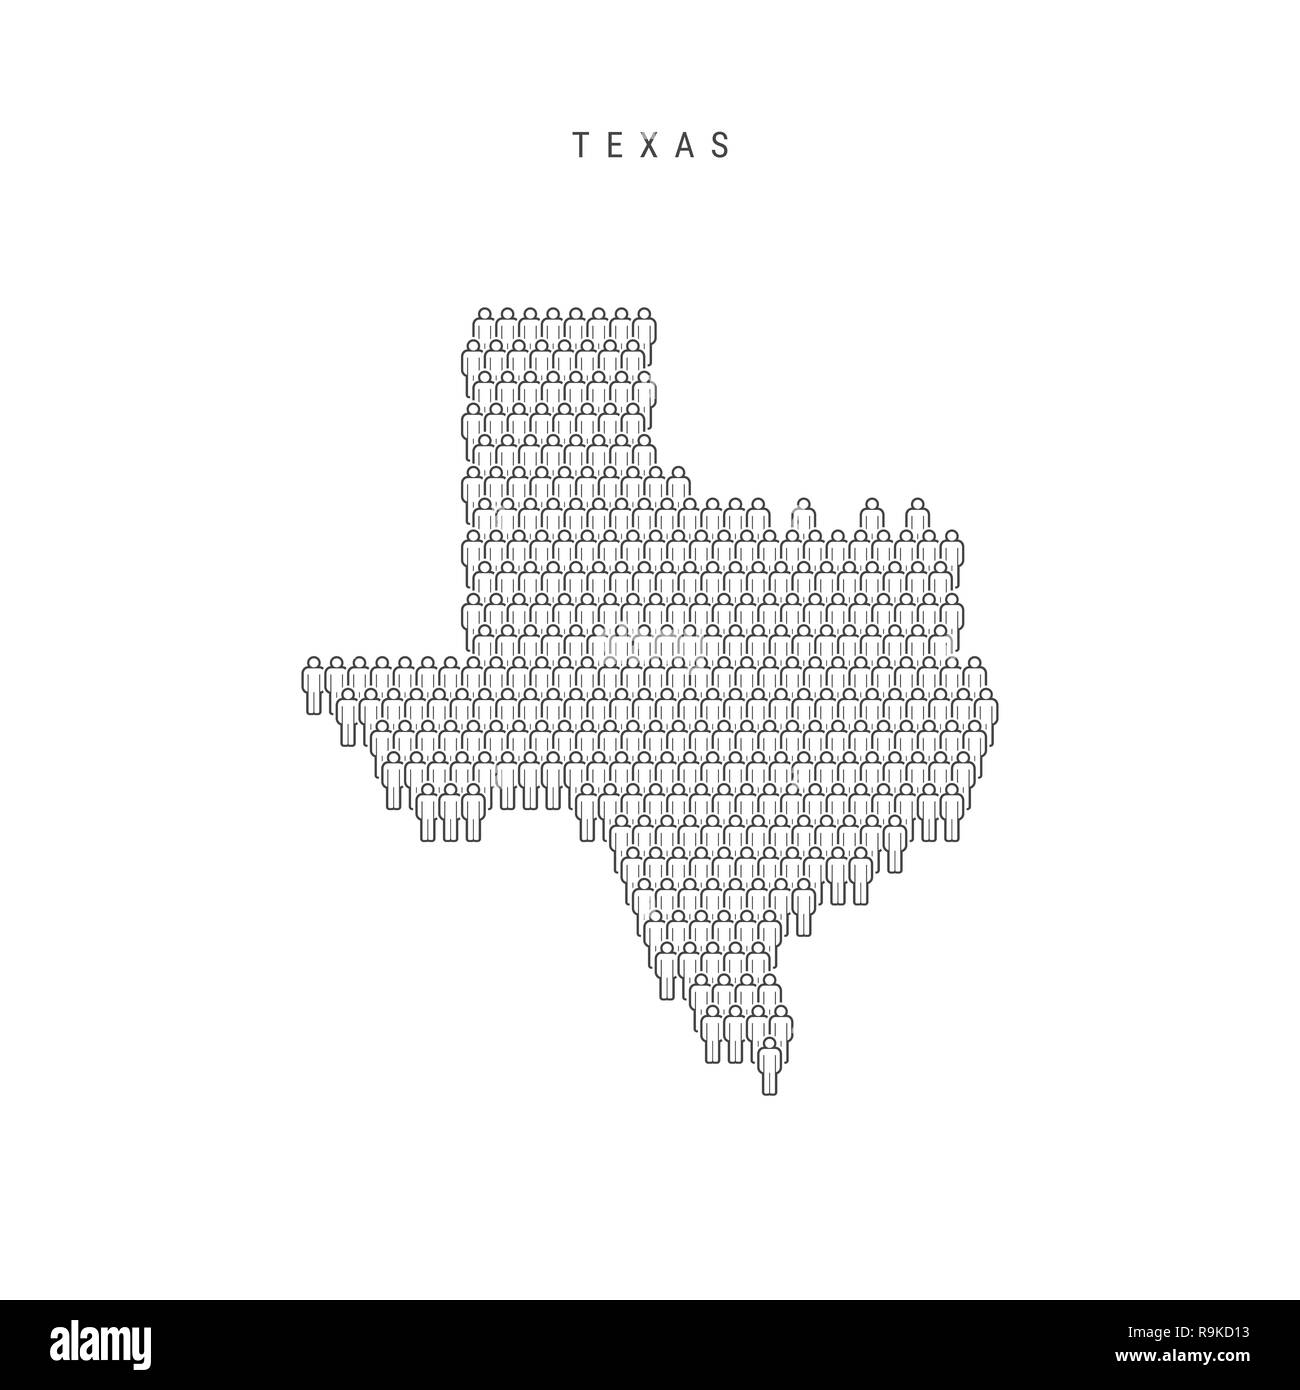 Population Map Of Texas.People Map Of Texas Us State Stylized Silhouette People Crowd In